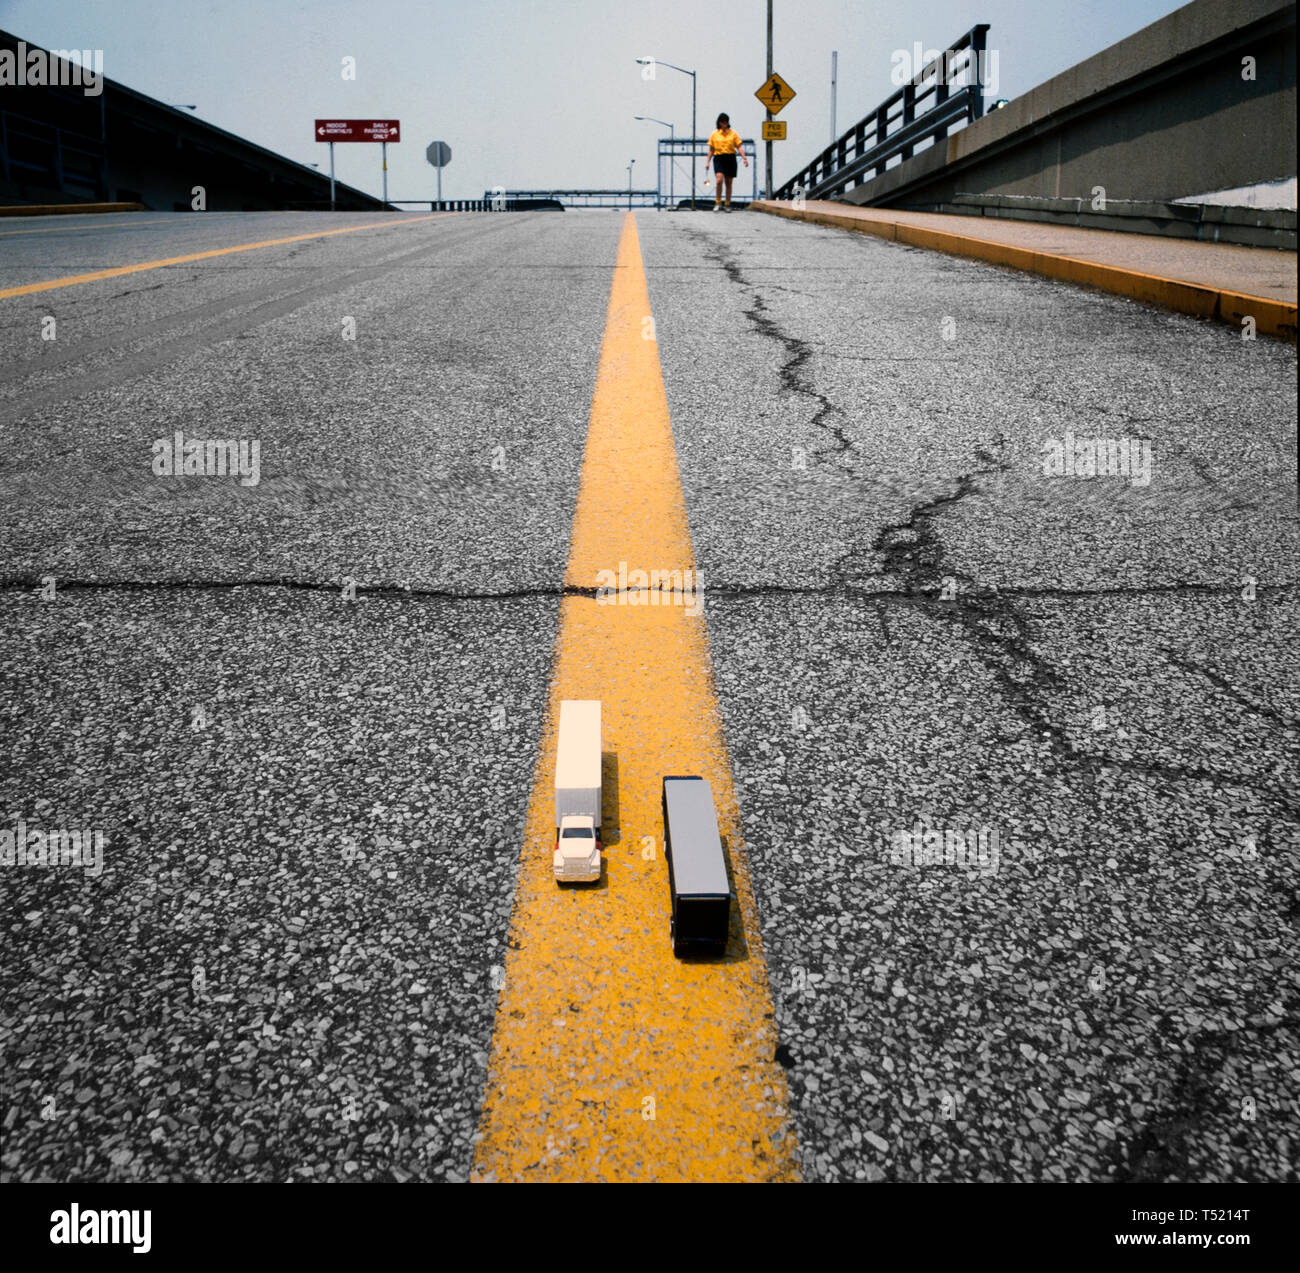 model truck on a real road - Stock Image